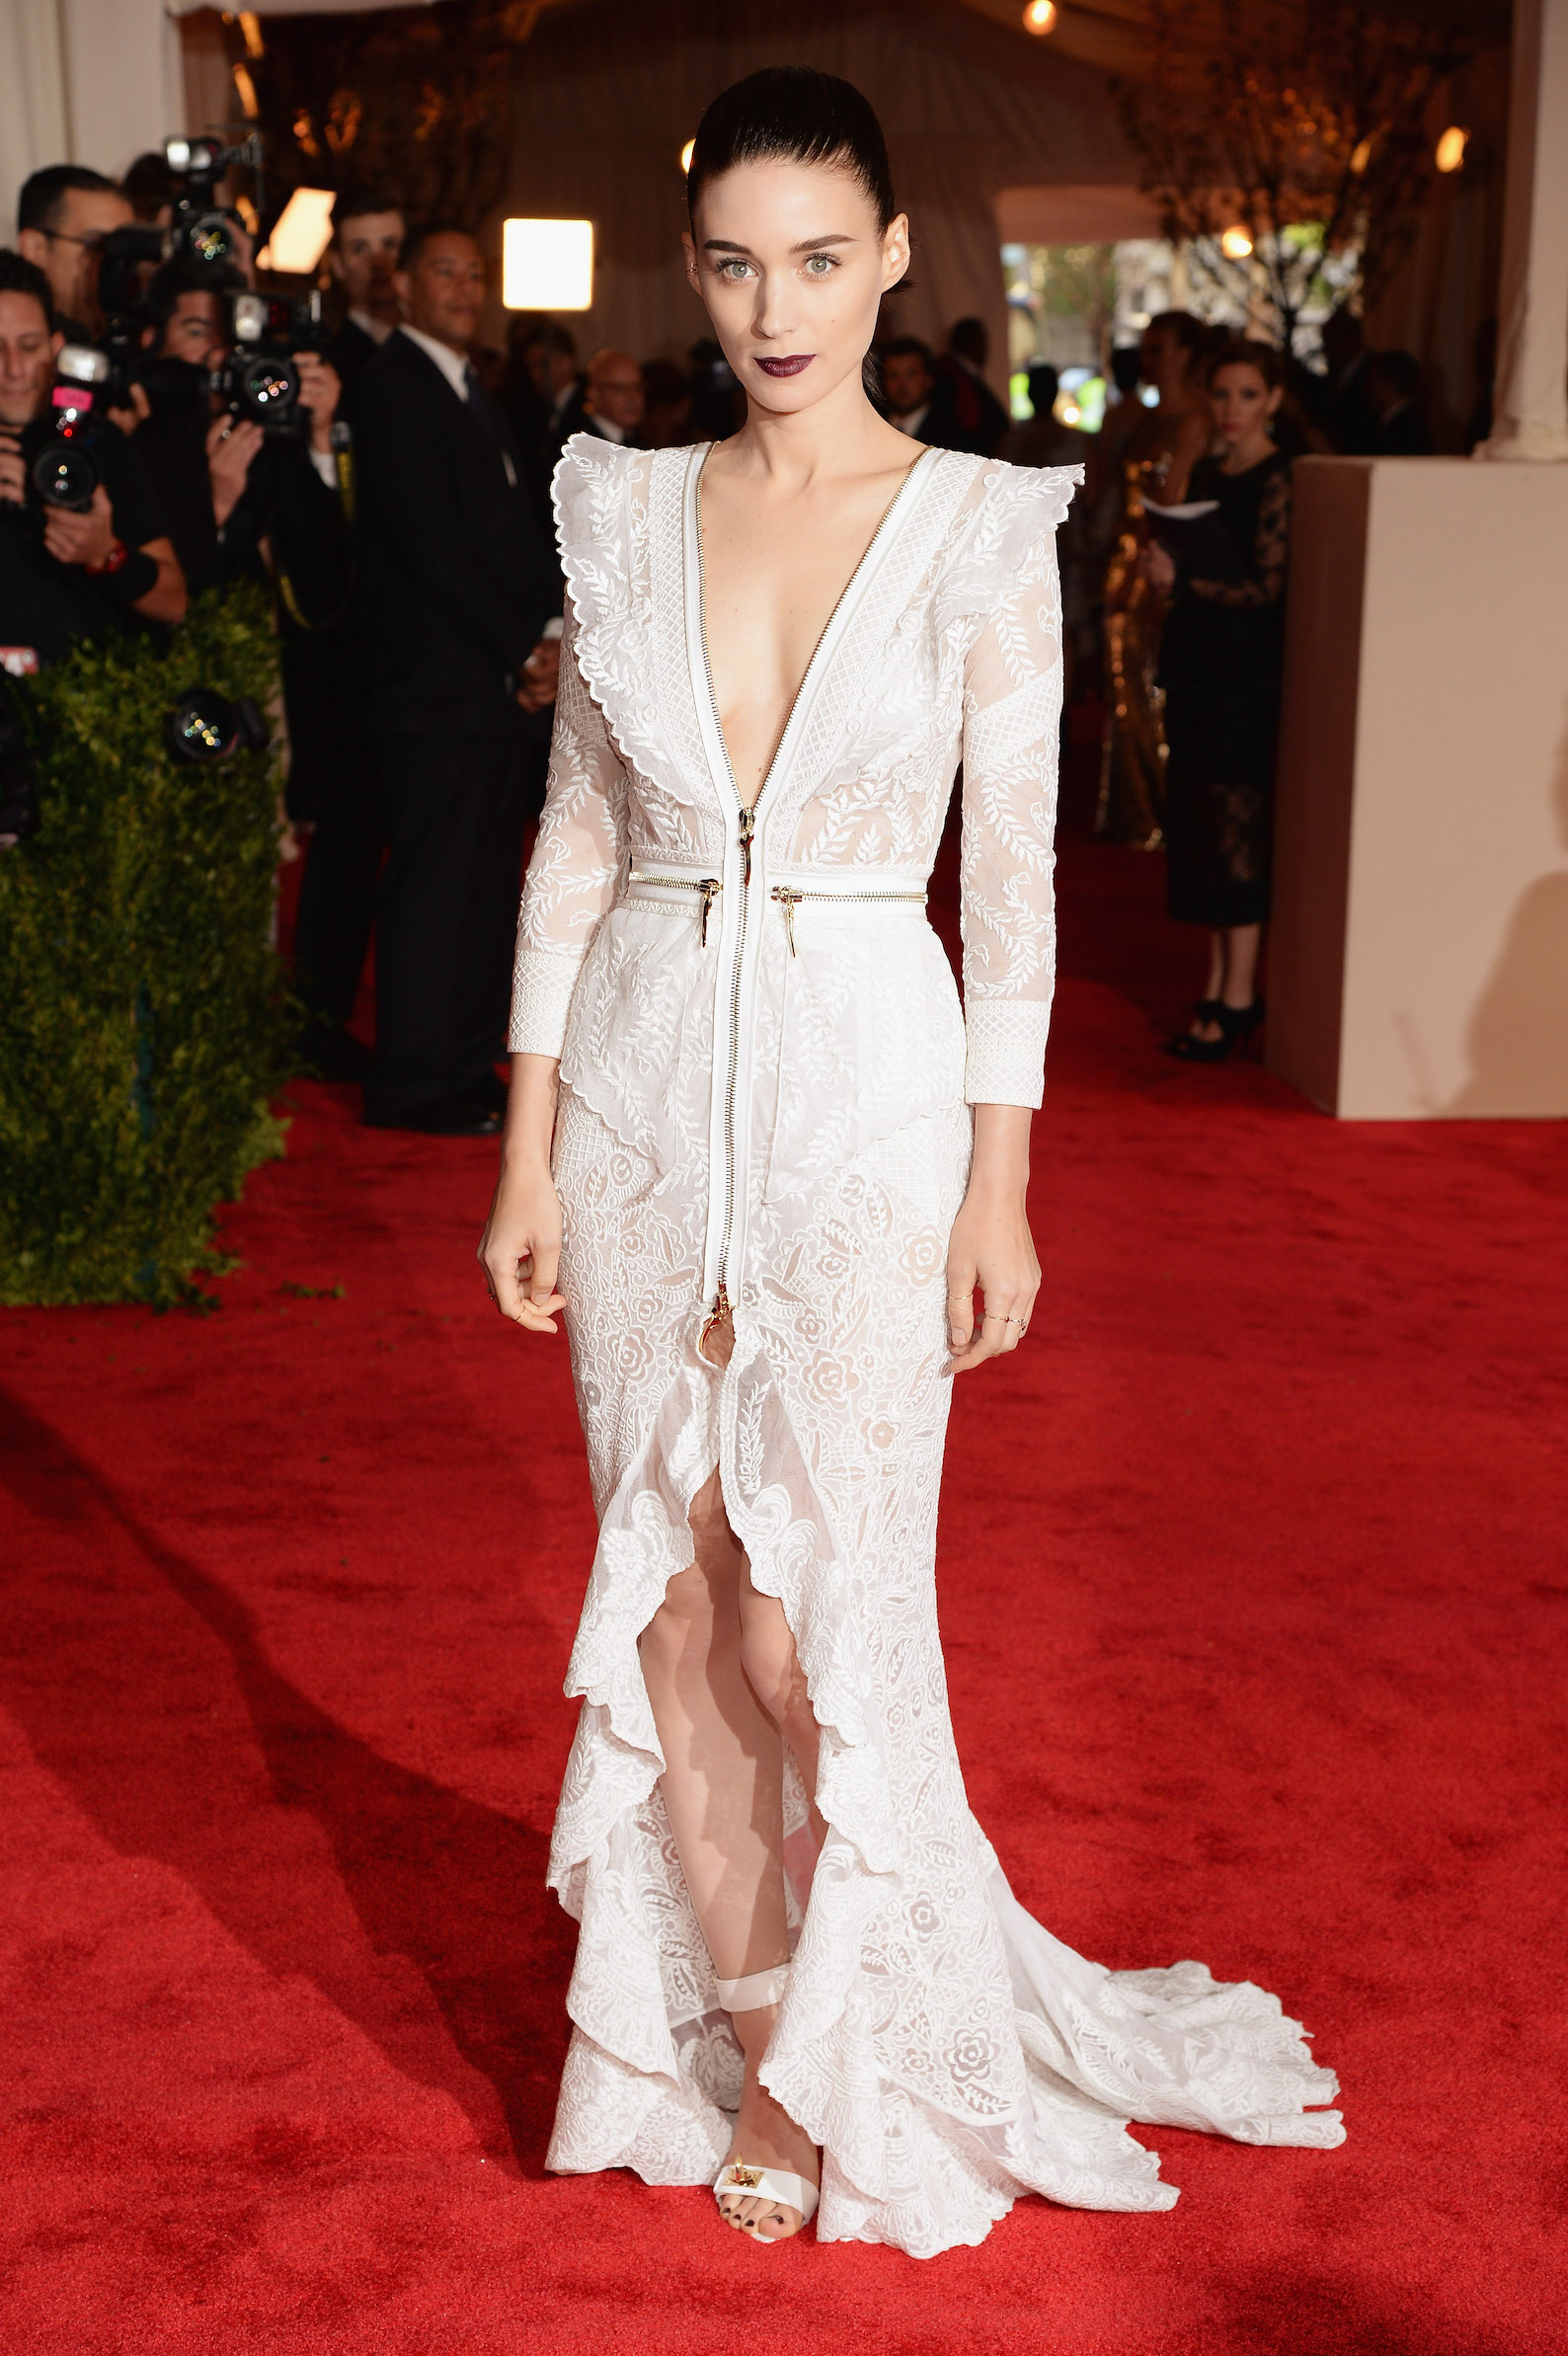 Rooney Mara in Givenchy Haute Couture by Riccardo Tisci (Photo credit: Getty Images)